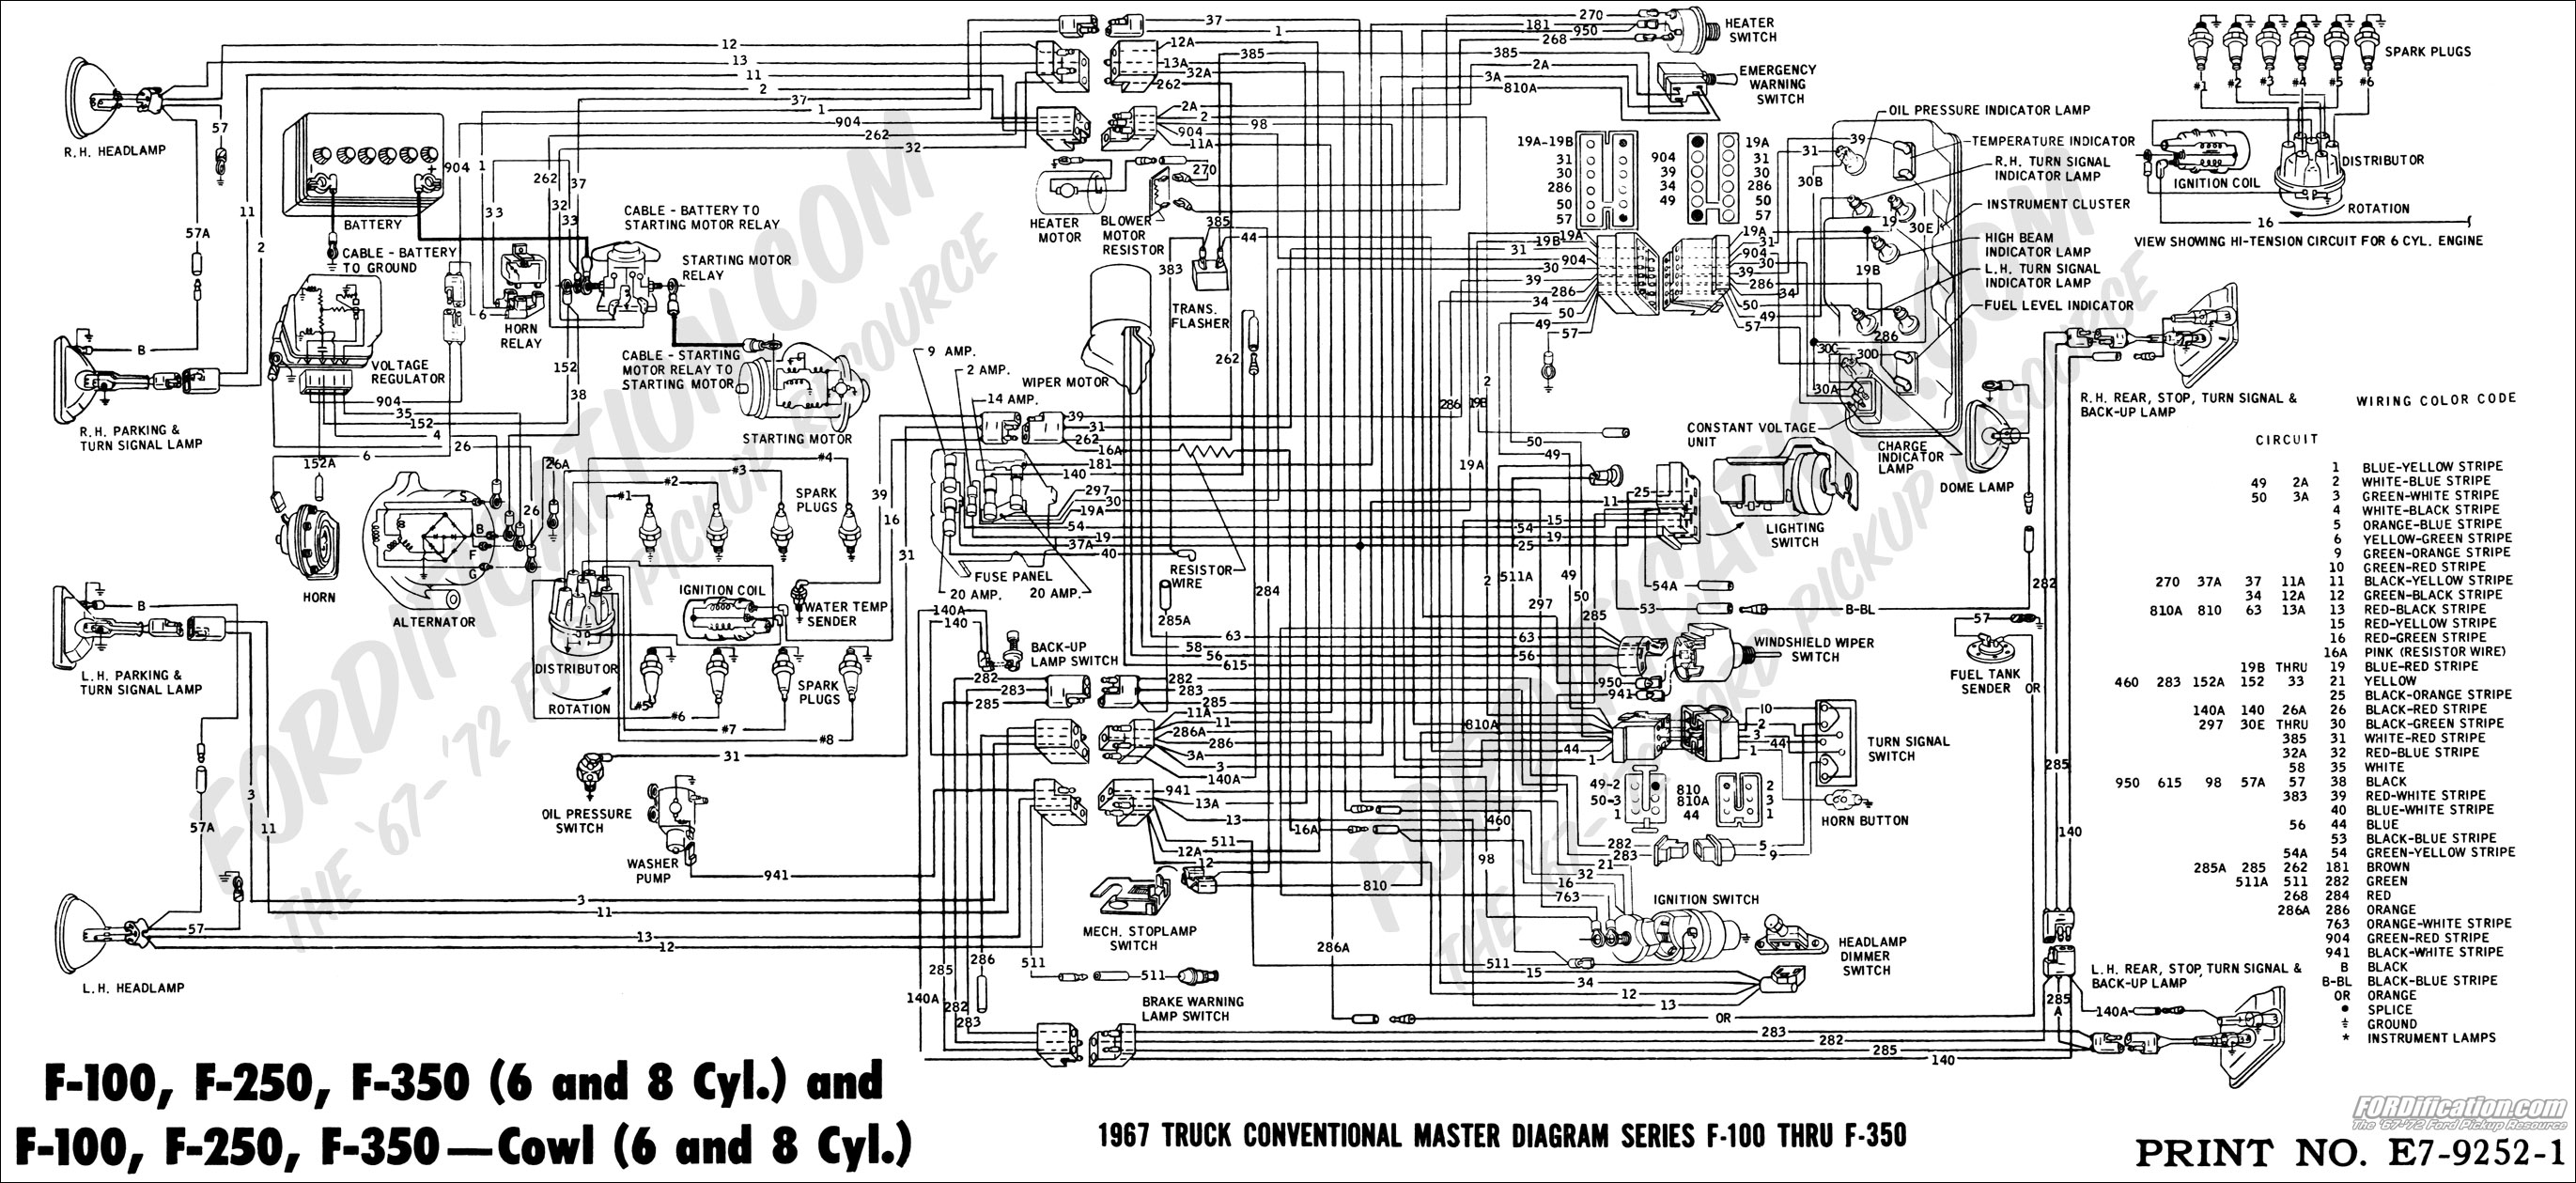 wiring diagram 1985 dodge royal with Viewtopic on 22 further Chevy Turn Signal Switch 1955 1957 besides Showthread likewise Nissan Pickup Vacuum Schematic moreover .